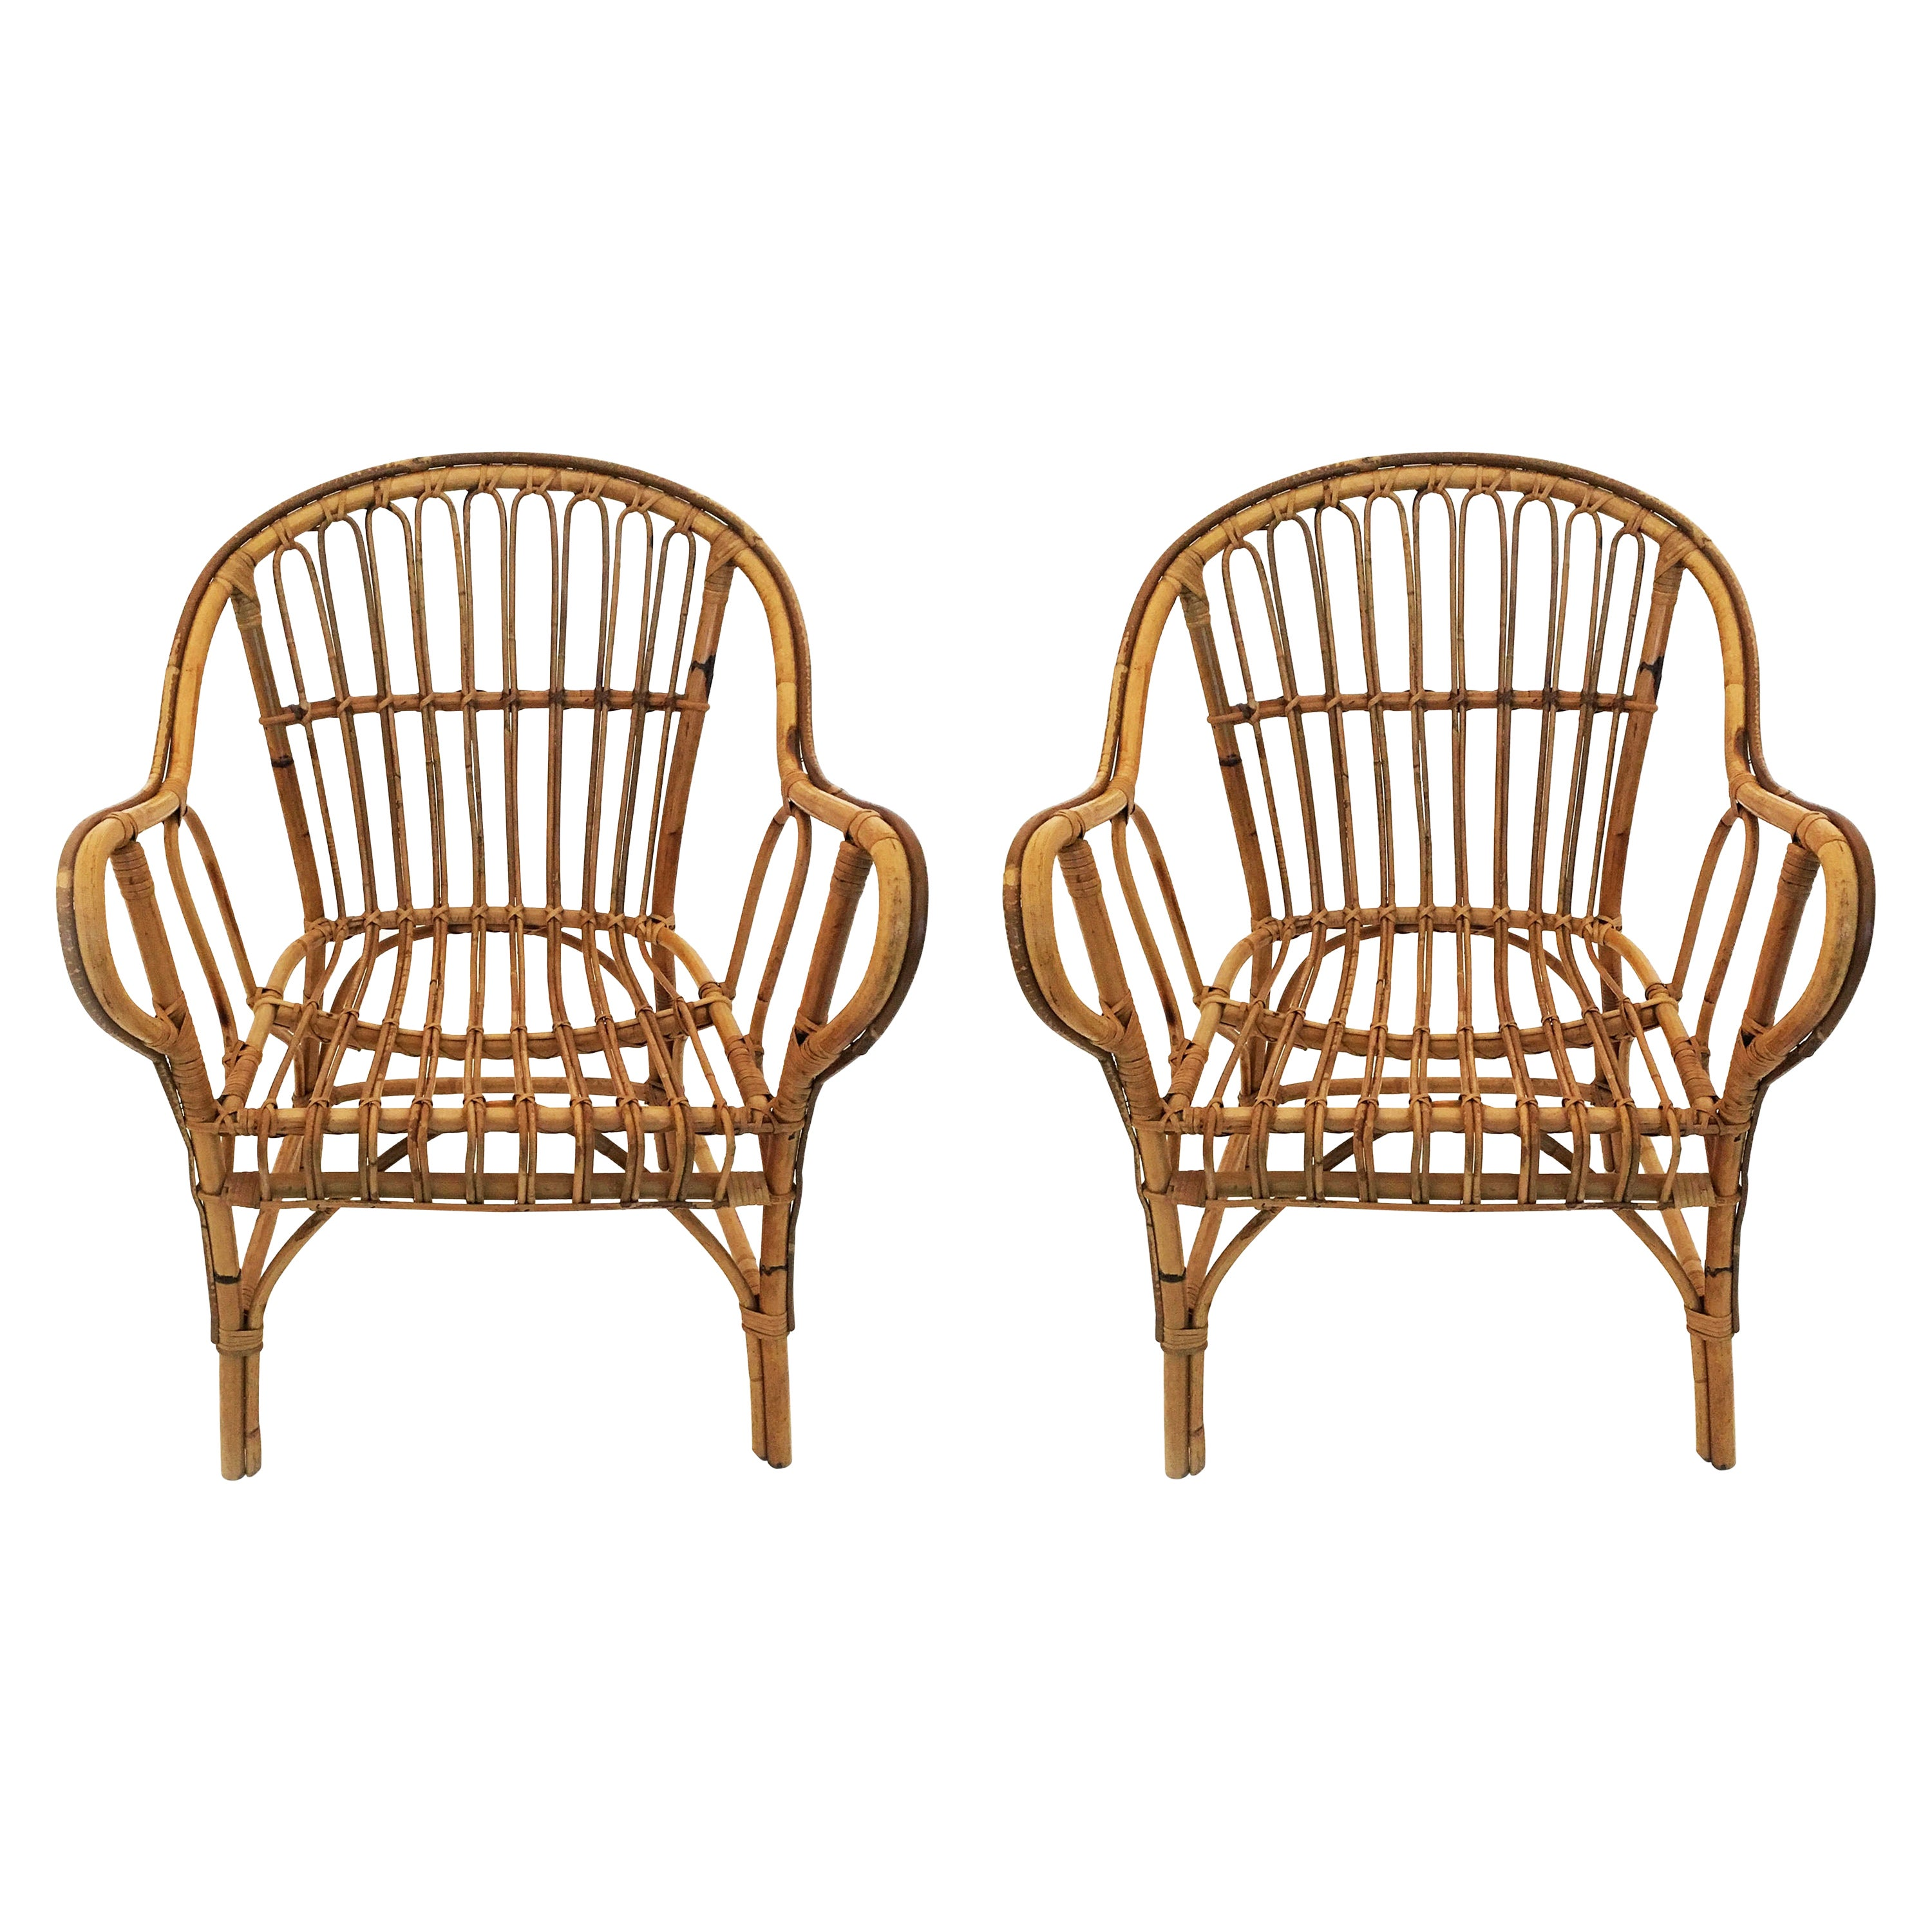 Bamboo Side Chairs Pair, France 1950s